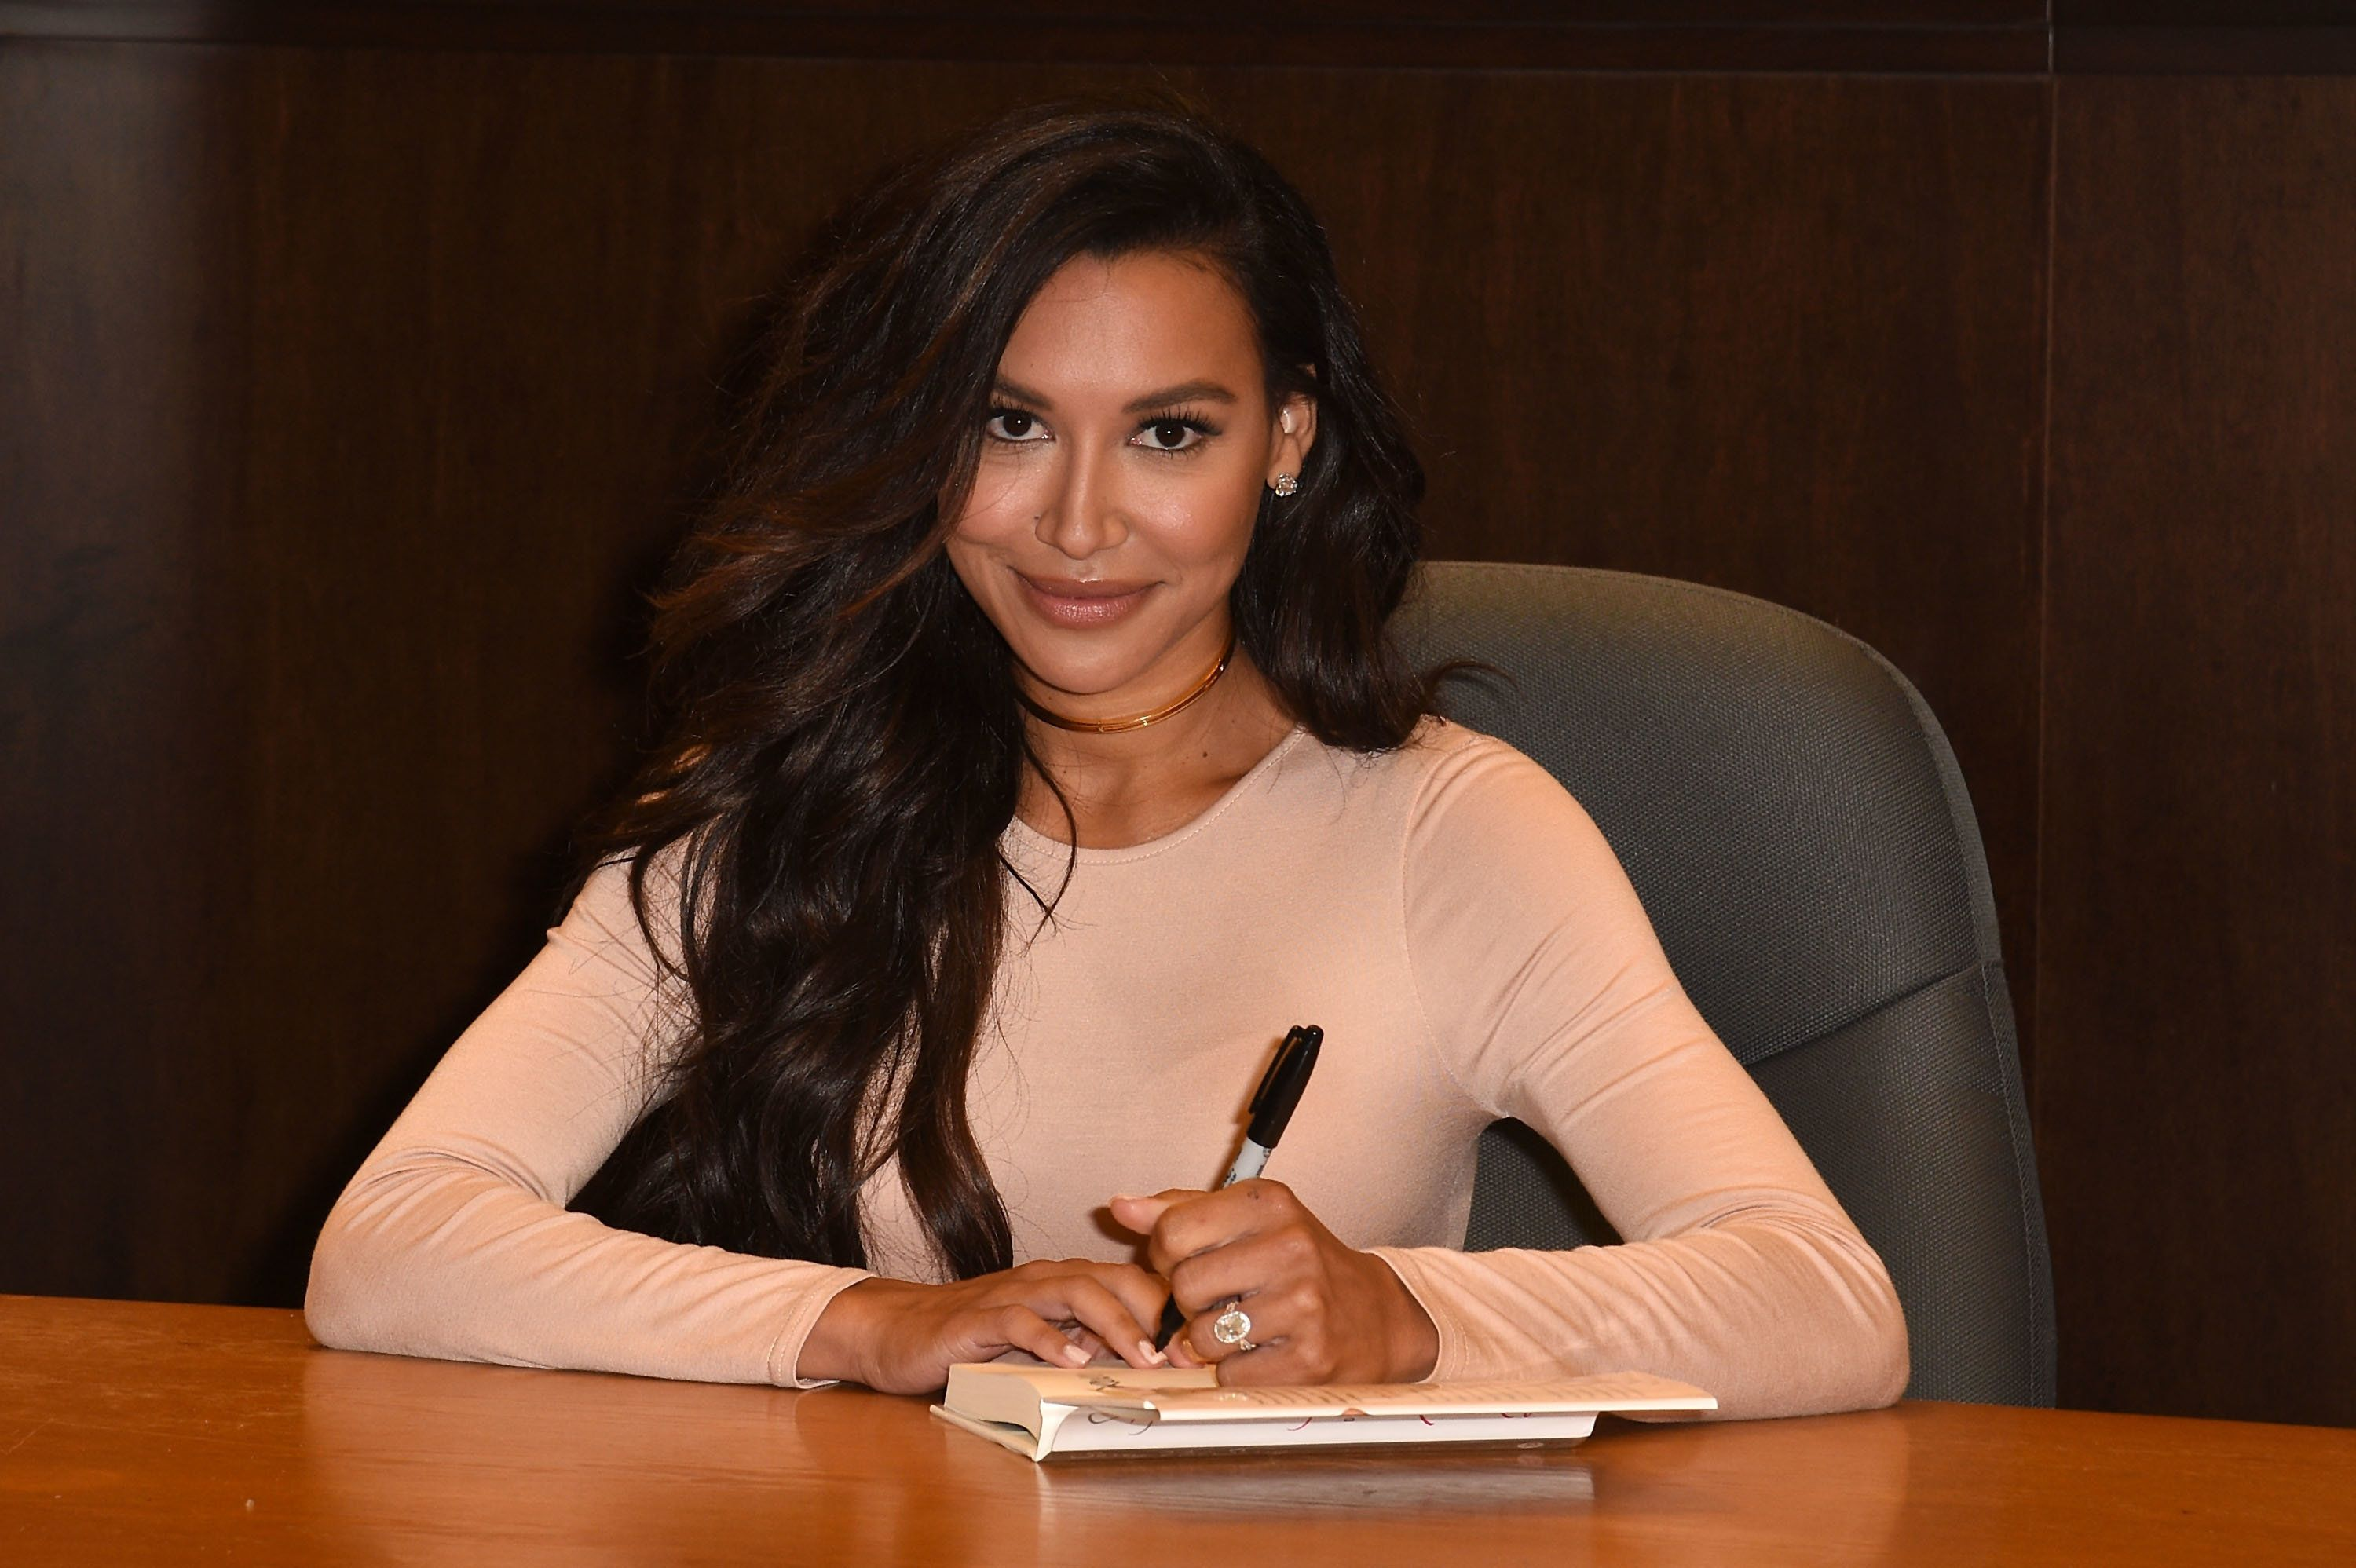 Naya Rivera attends her book signing for 'Sorry Not Sorry' in Los Angeles.